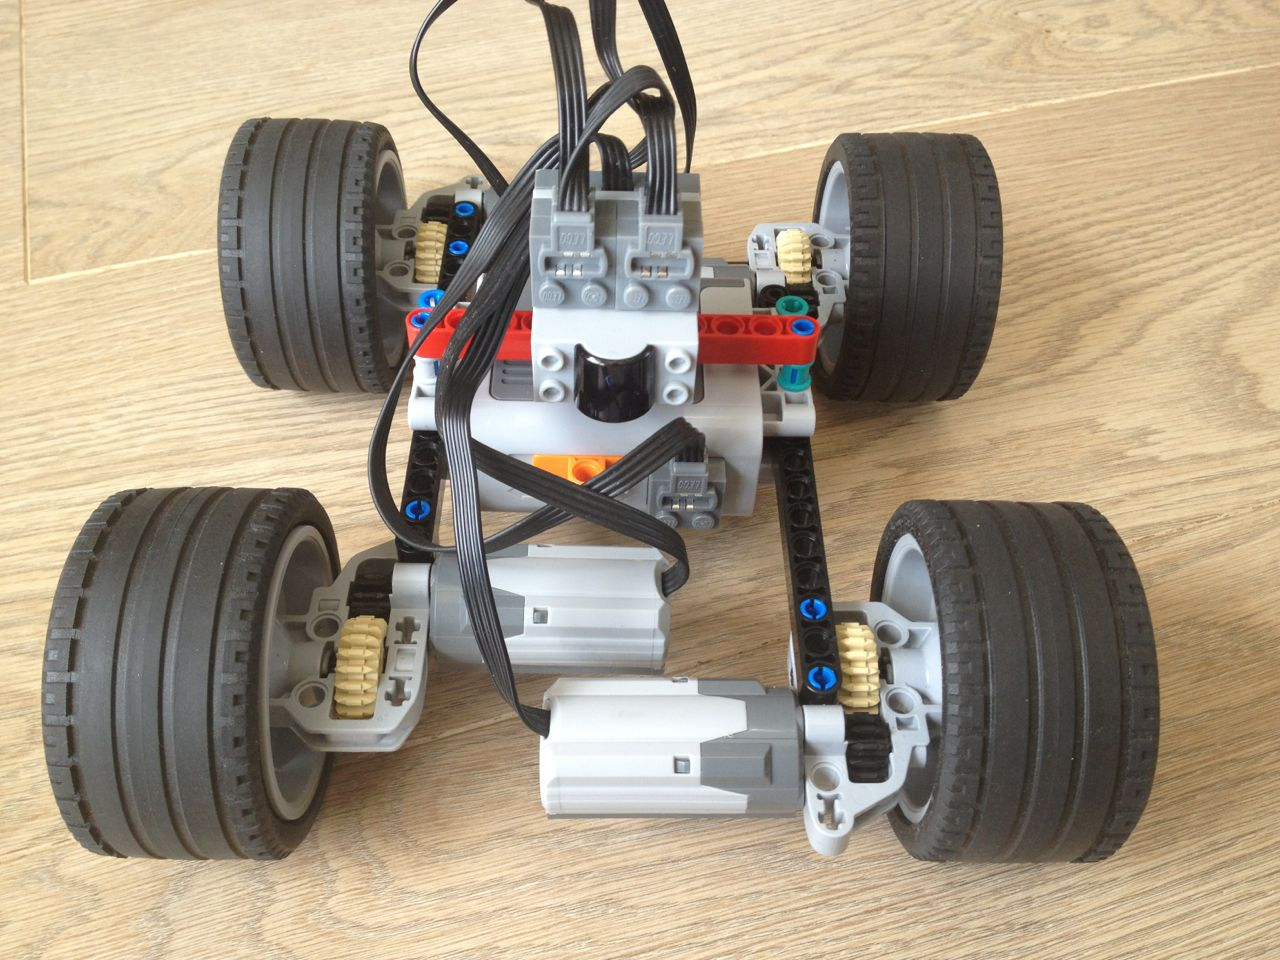 remote control cars off road electric with Building An Off Road Car With Lego Technic on Rc Trucks 4x4 likewise Rc Ford Fiesta St Rally Traxxas 110 Scale additionally Building An Off Road Car With Lego Technic in addition Showroom model besides 1726543848.